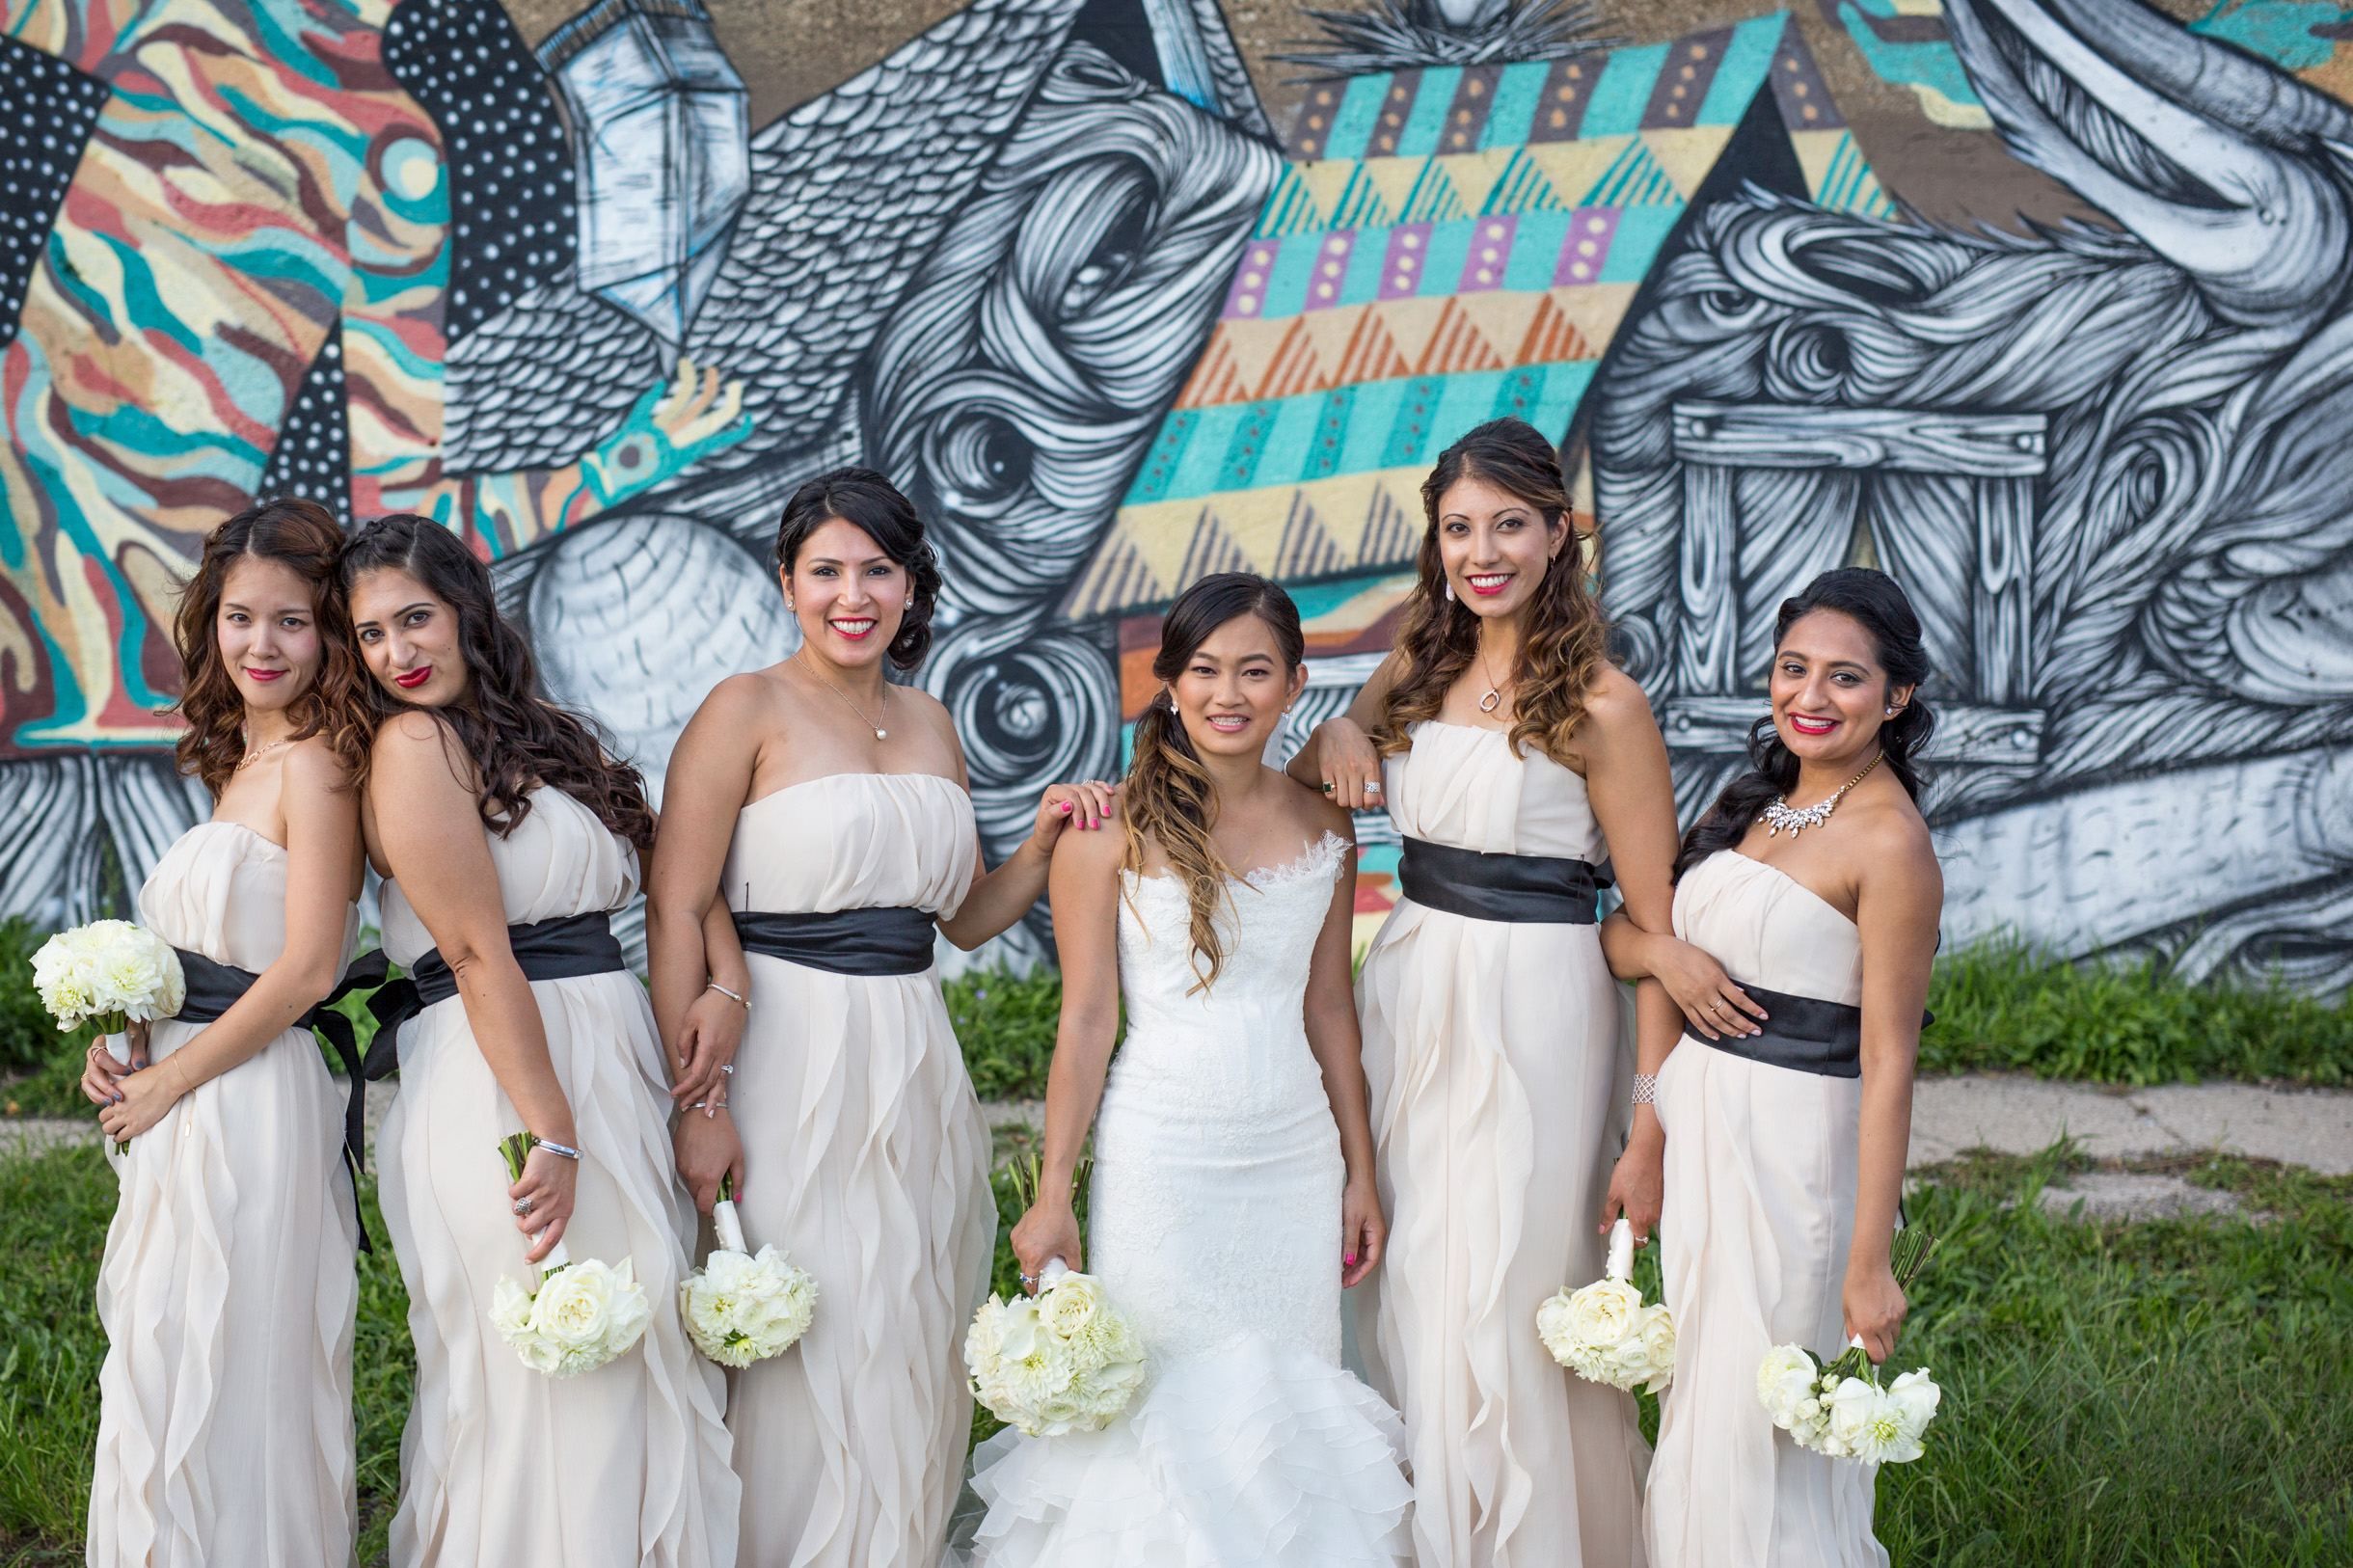 Bridemaids posing with bride in front of graffiti street art mural in Pilsen